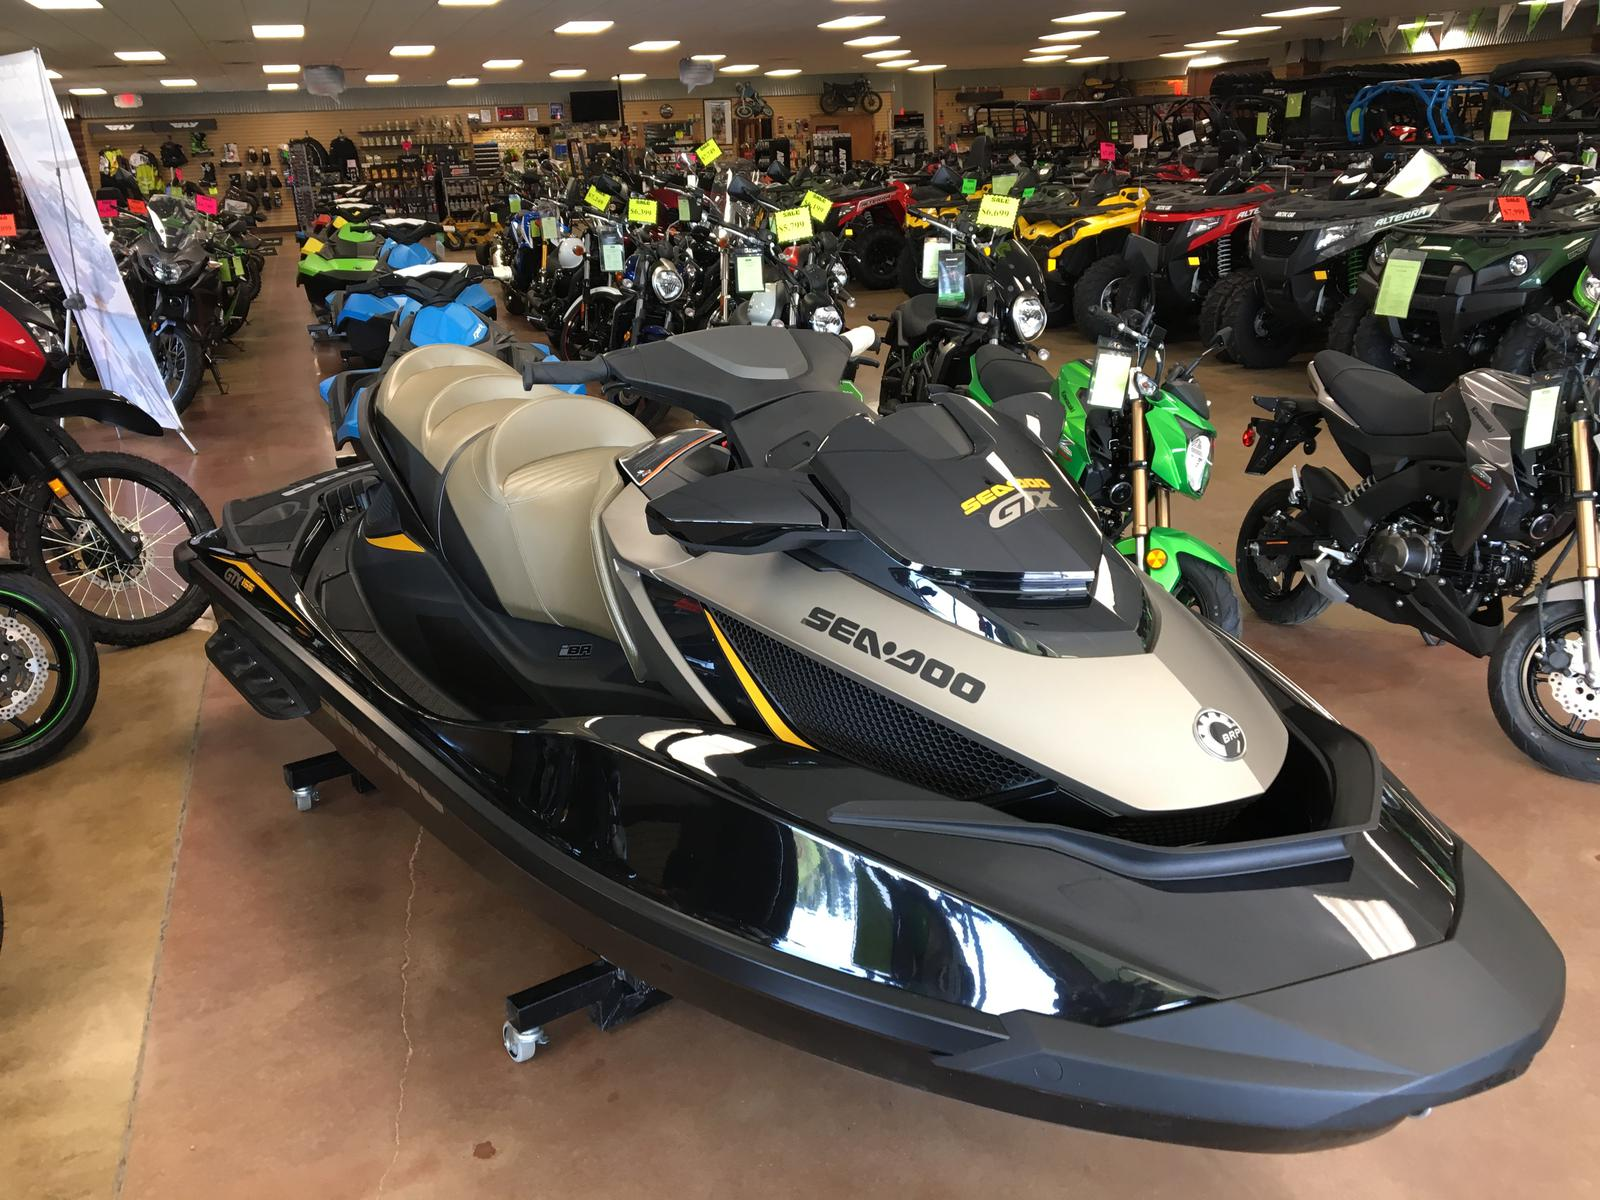 2017 Sea Doo Gtx S 155 For Sale In Bartlesville Ok No Limit Seadoo Fuse Box Img 3209